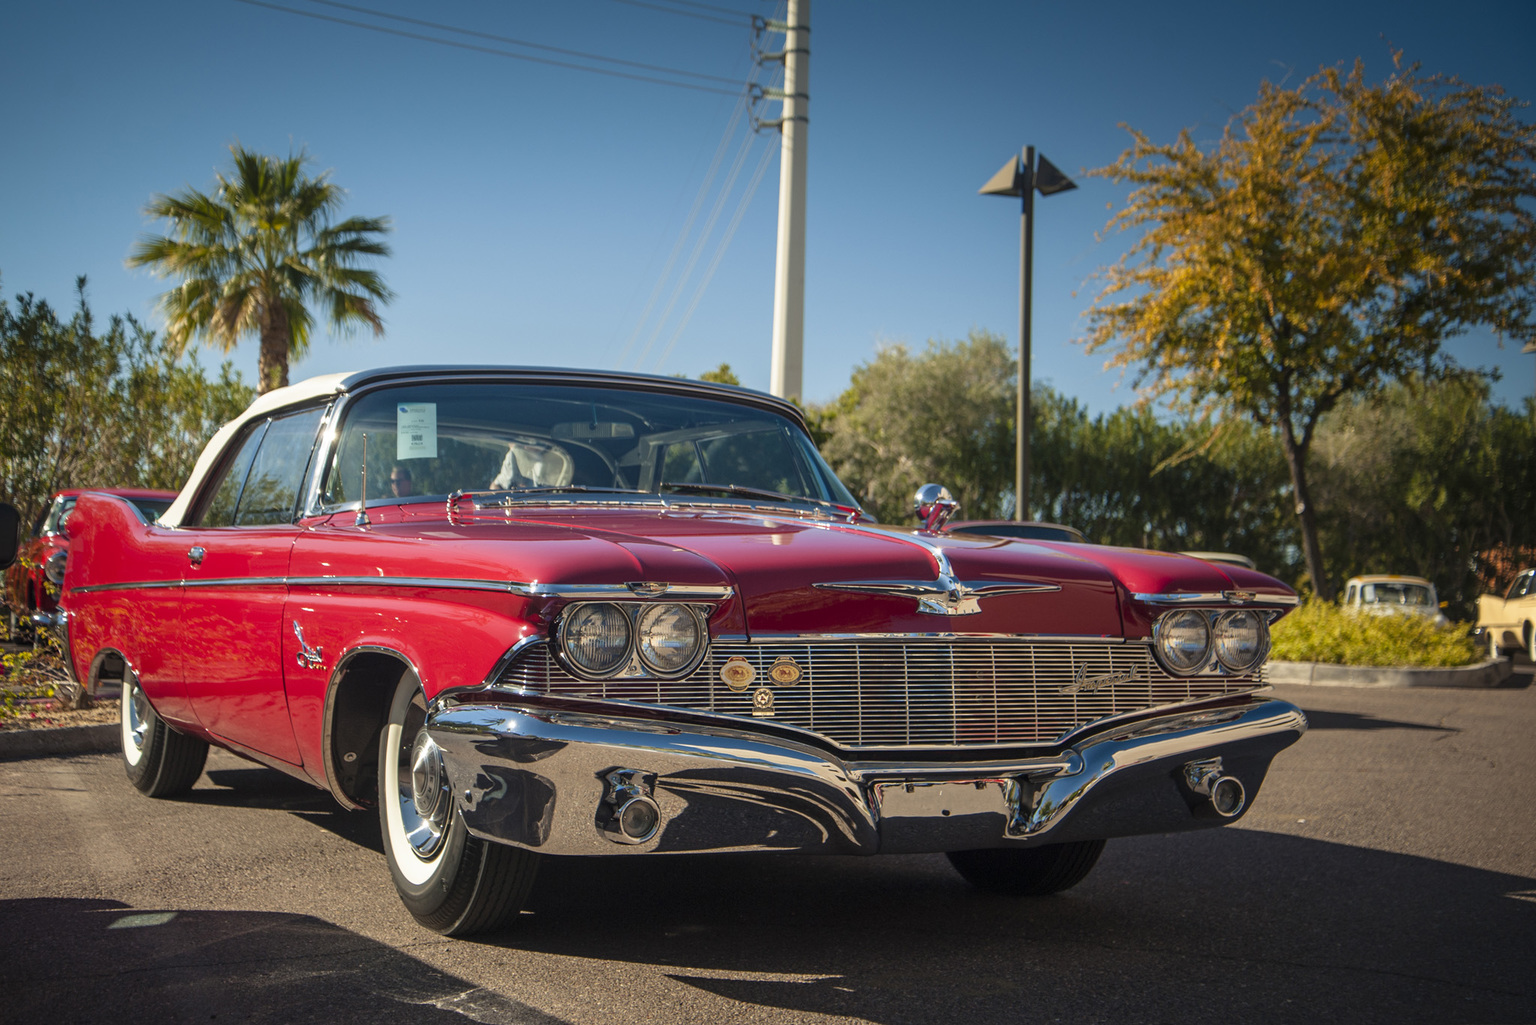 1960 Imperial Crown Convertible Coupe | | SuperCars.net